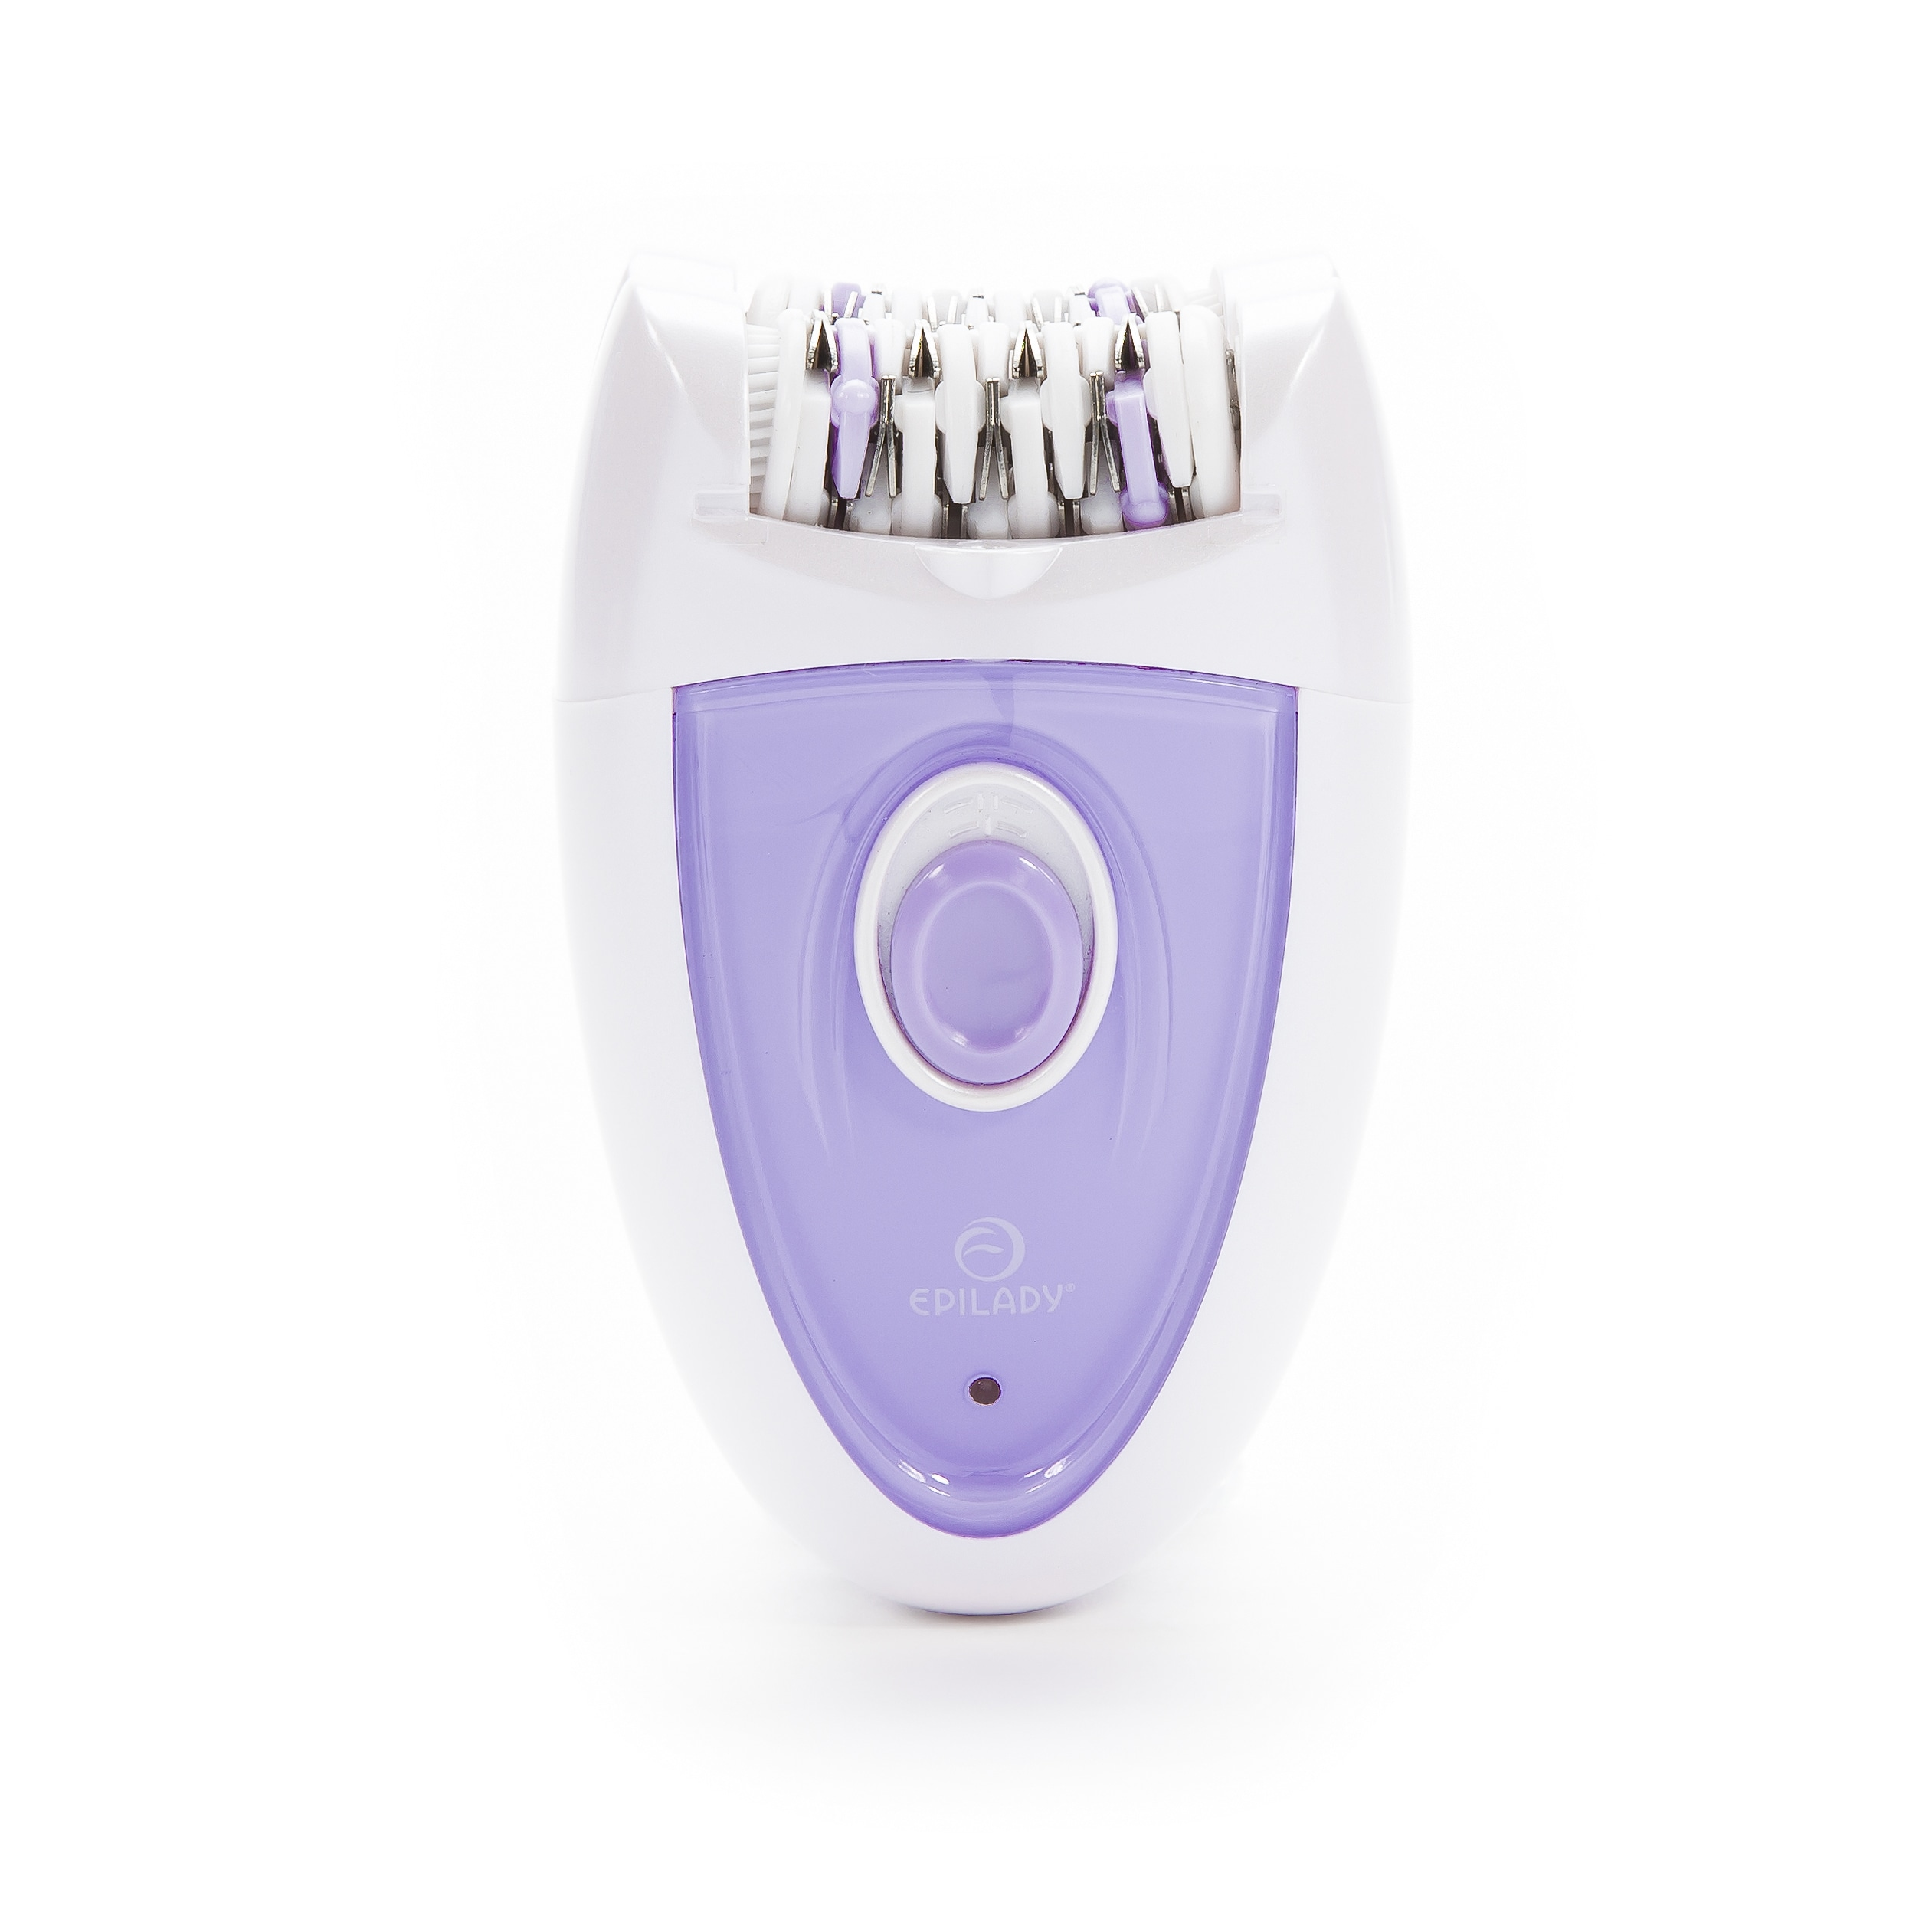 Epilady Duo Dual Headed Rechargeable Epilator (Duo Rechargeable), Purple/White